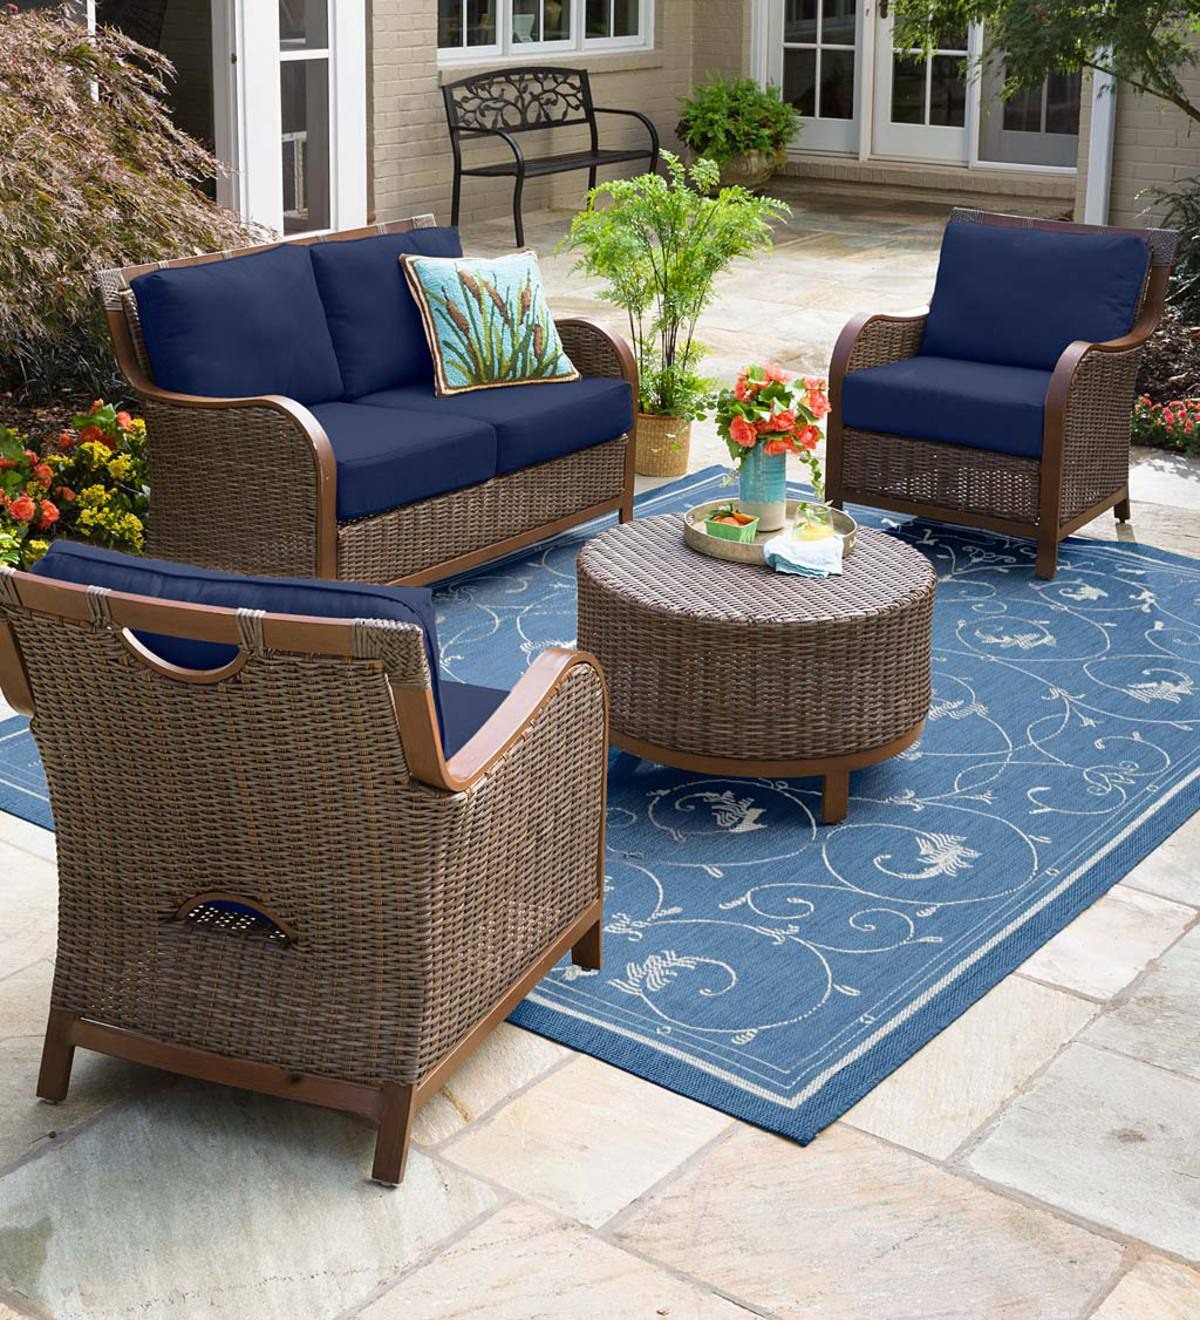 Urbanna Premium Wicker Four Piece Set with Luxury Cushions - Midnight Navy